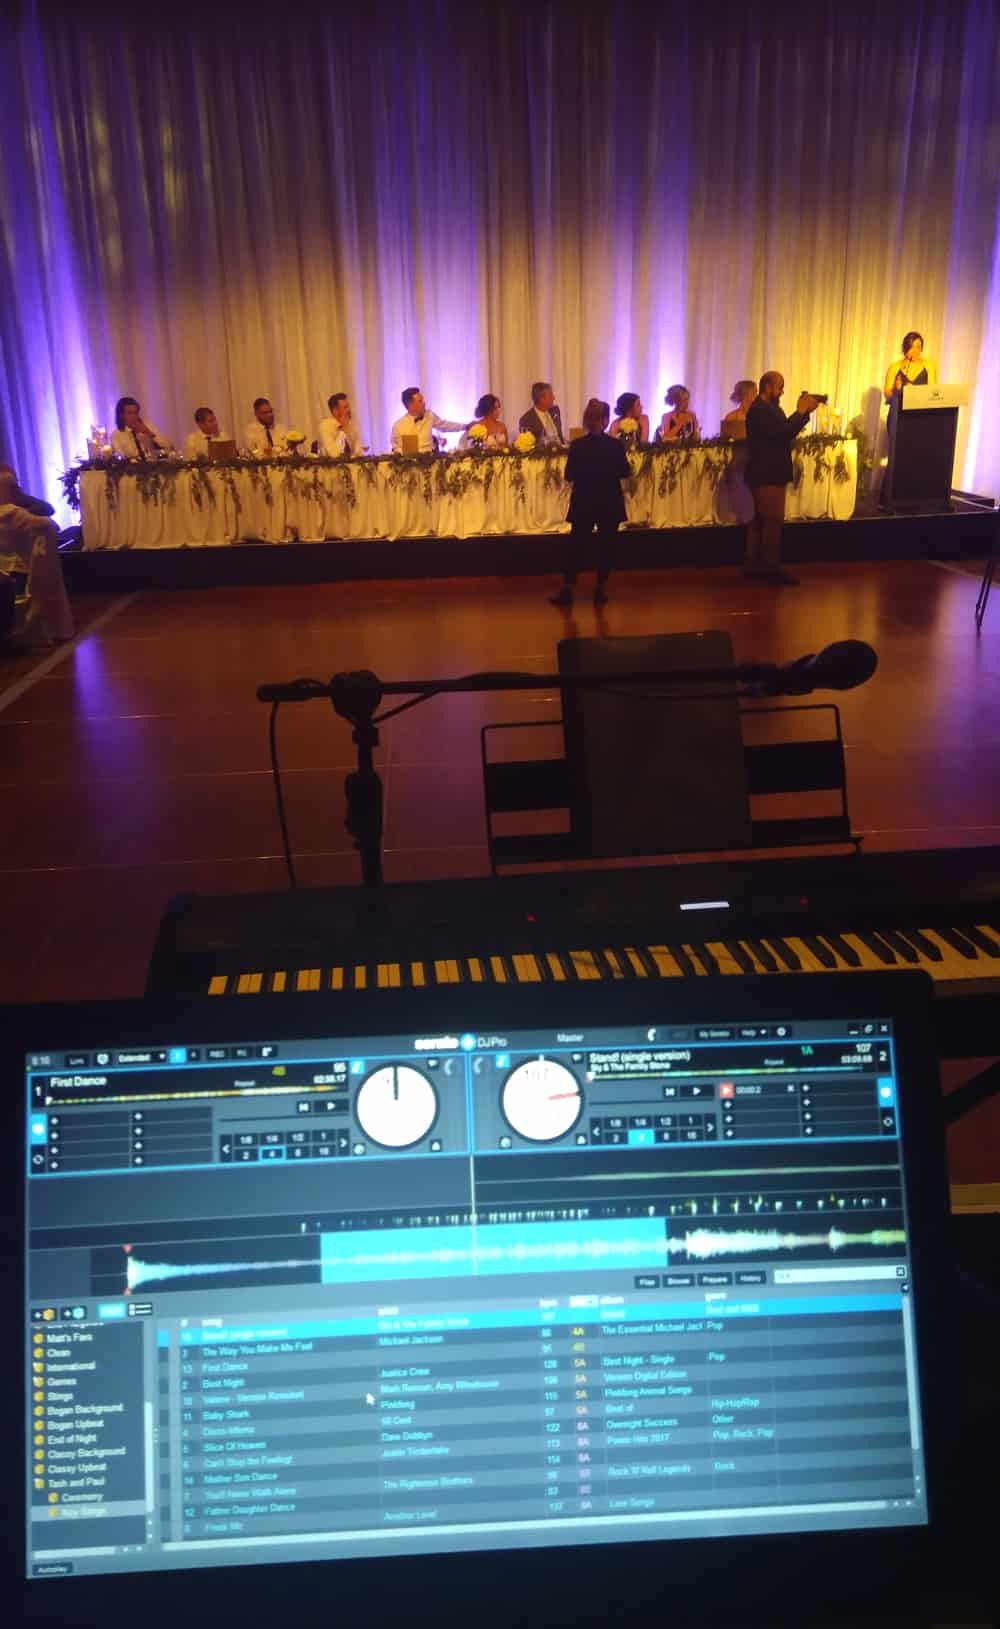 wedding dj melbourne packages specials cheap budget hire